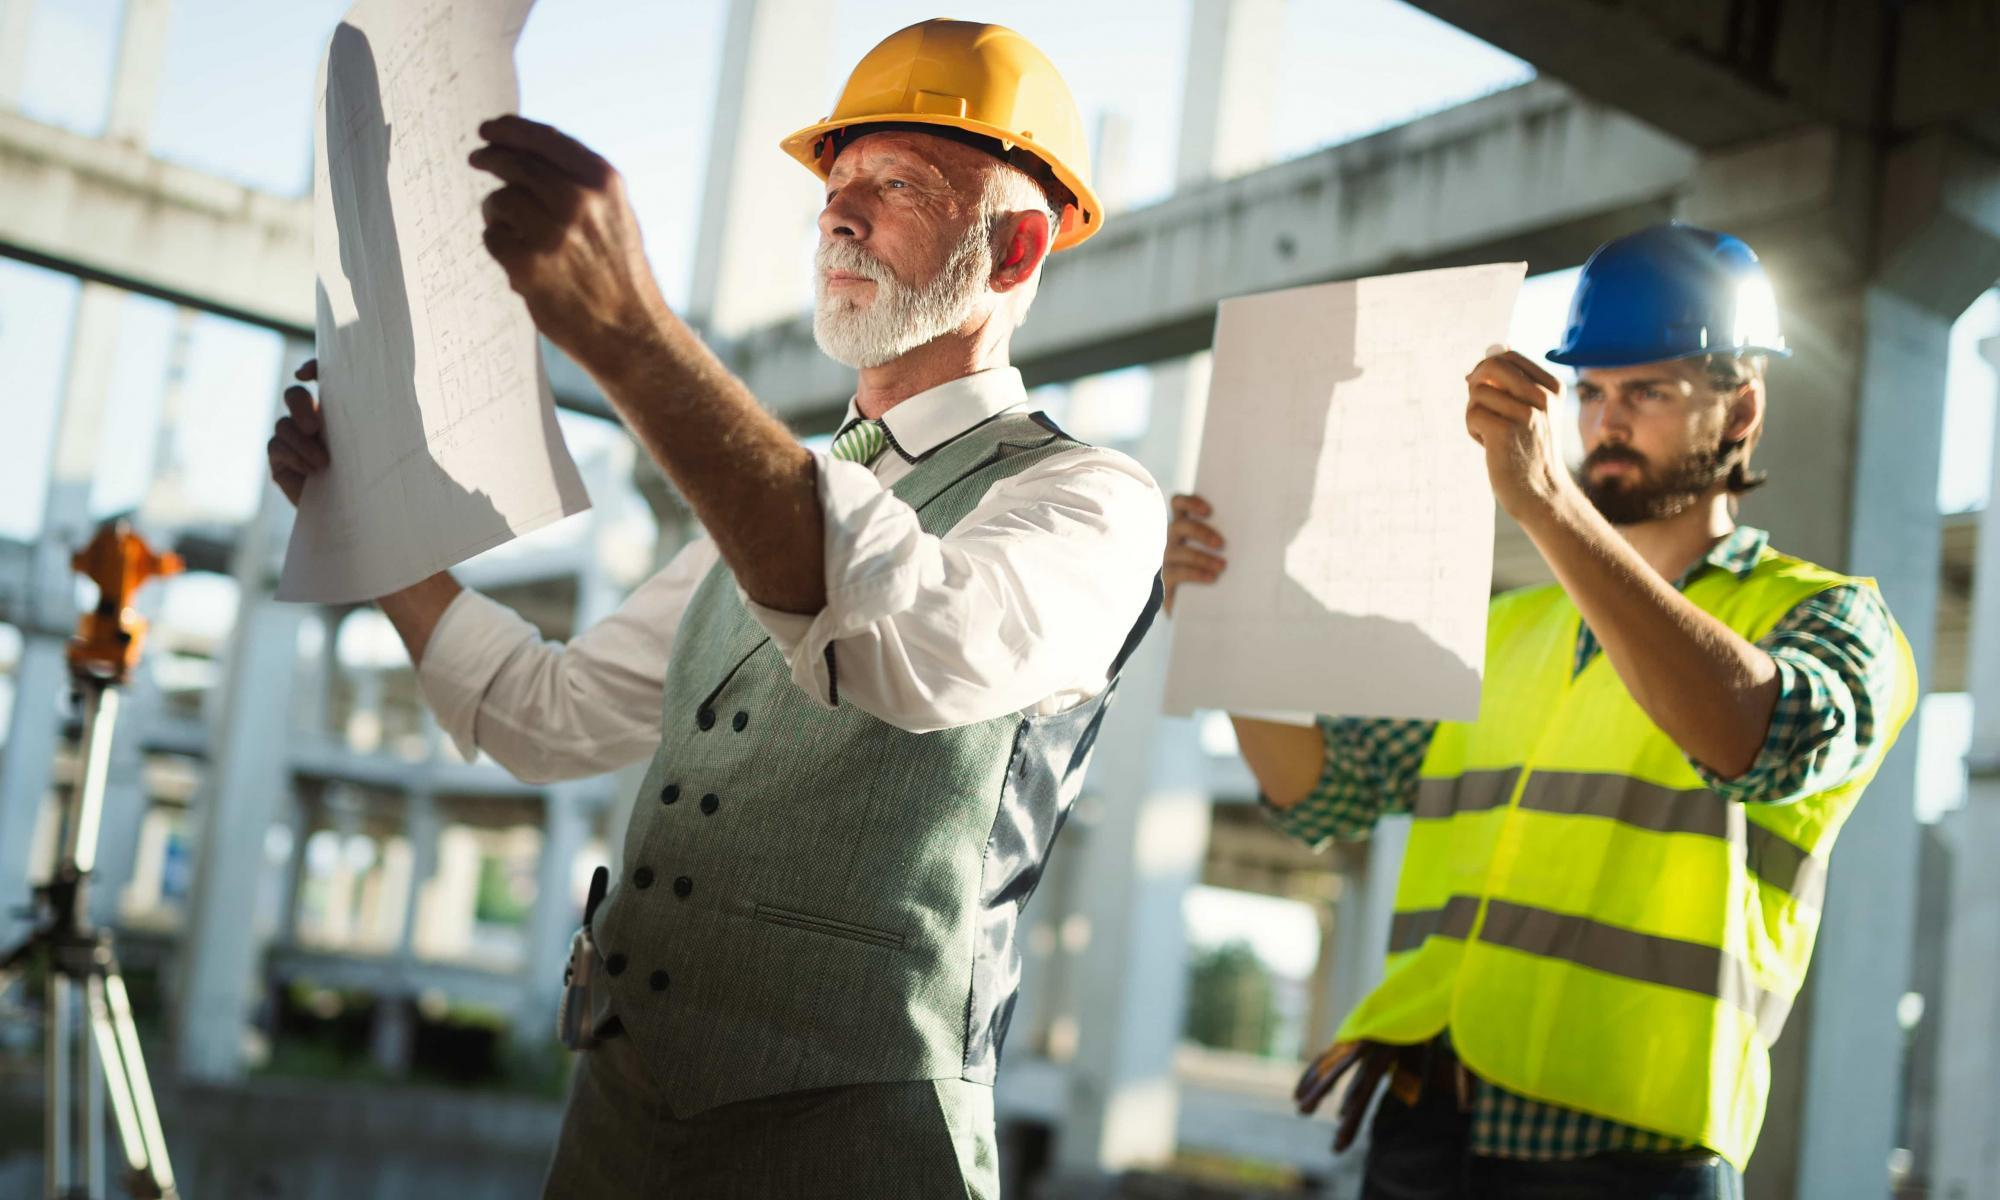 construction-engineers-discussion-with-architects-SDJAB6T-min